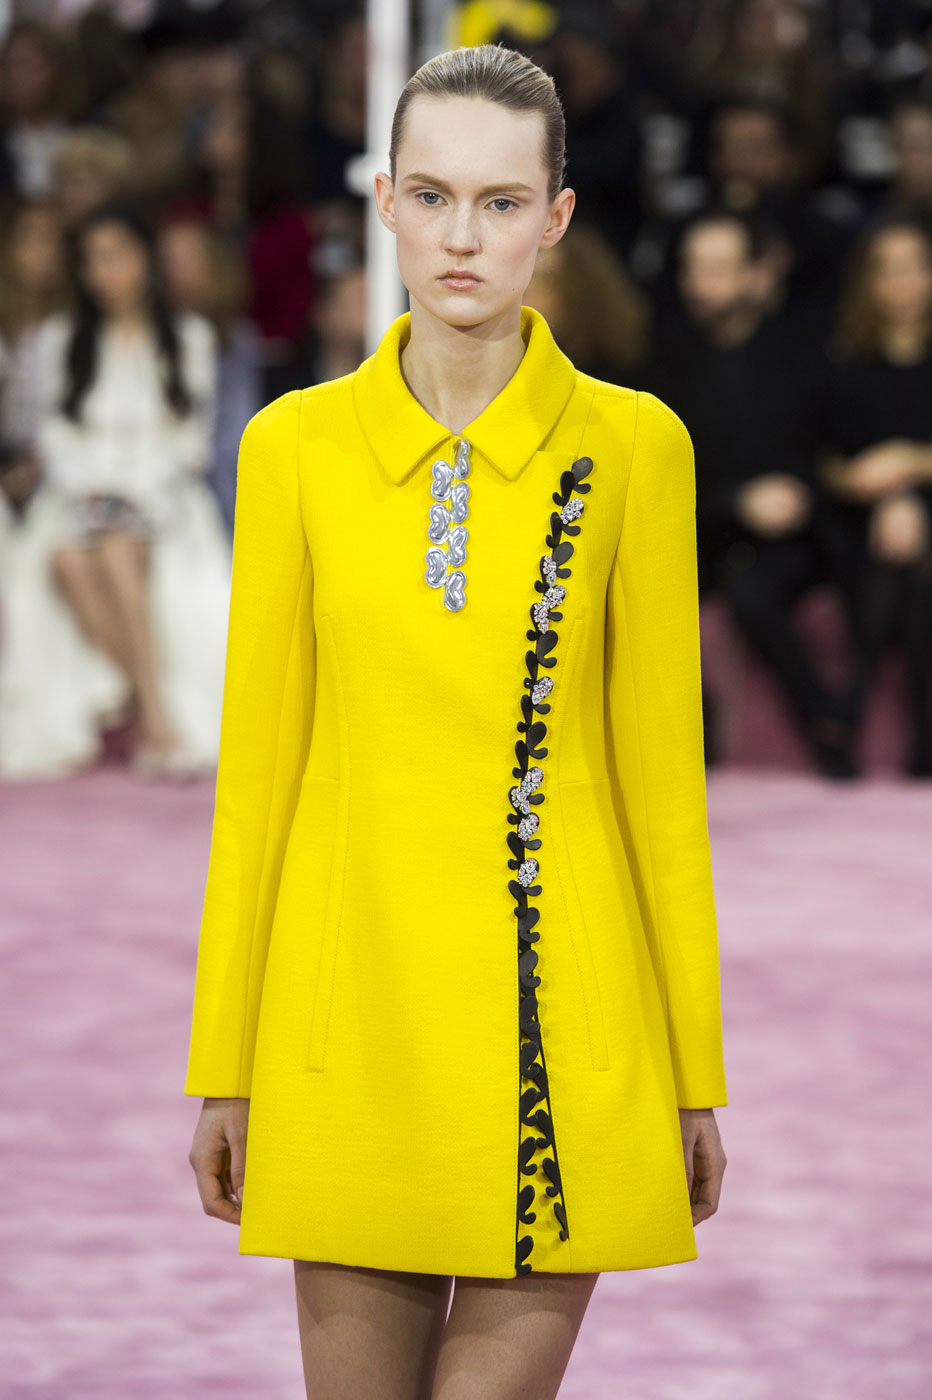 Christian-Dior-fashion-runway-show-haute-couture-paris-spring-summer-2015-the-impression-097